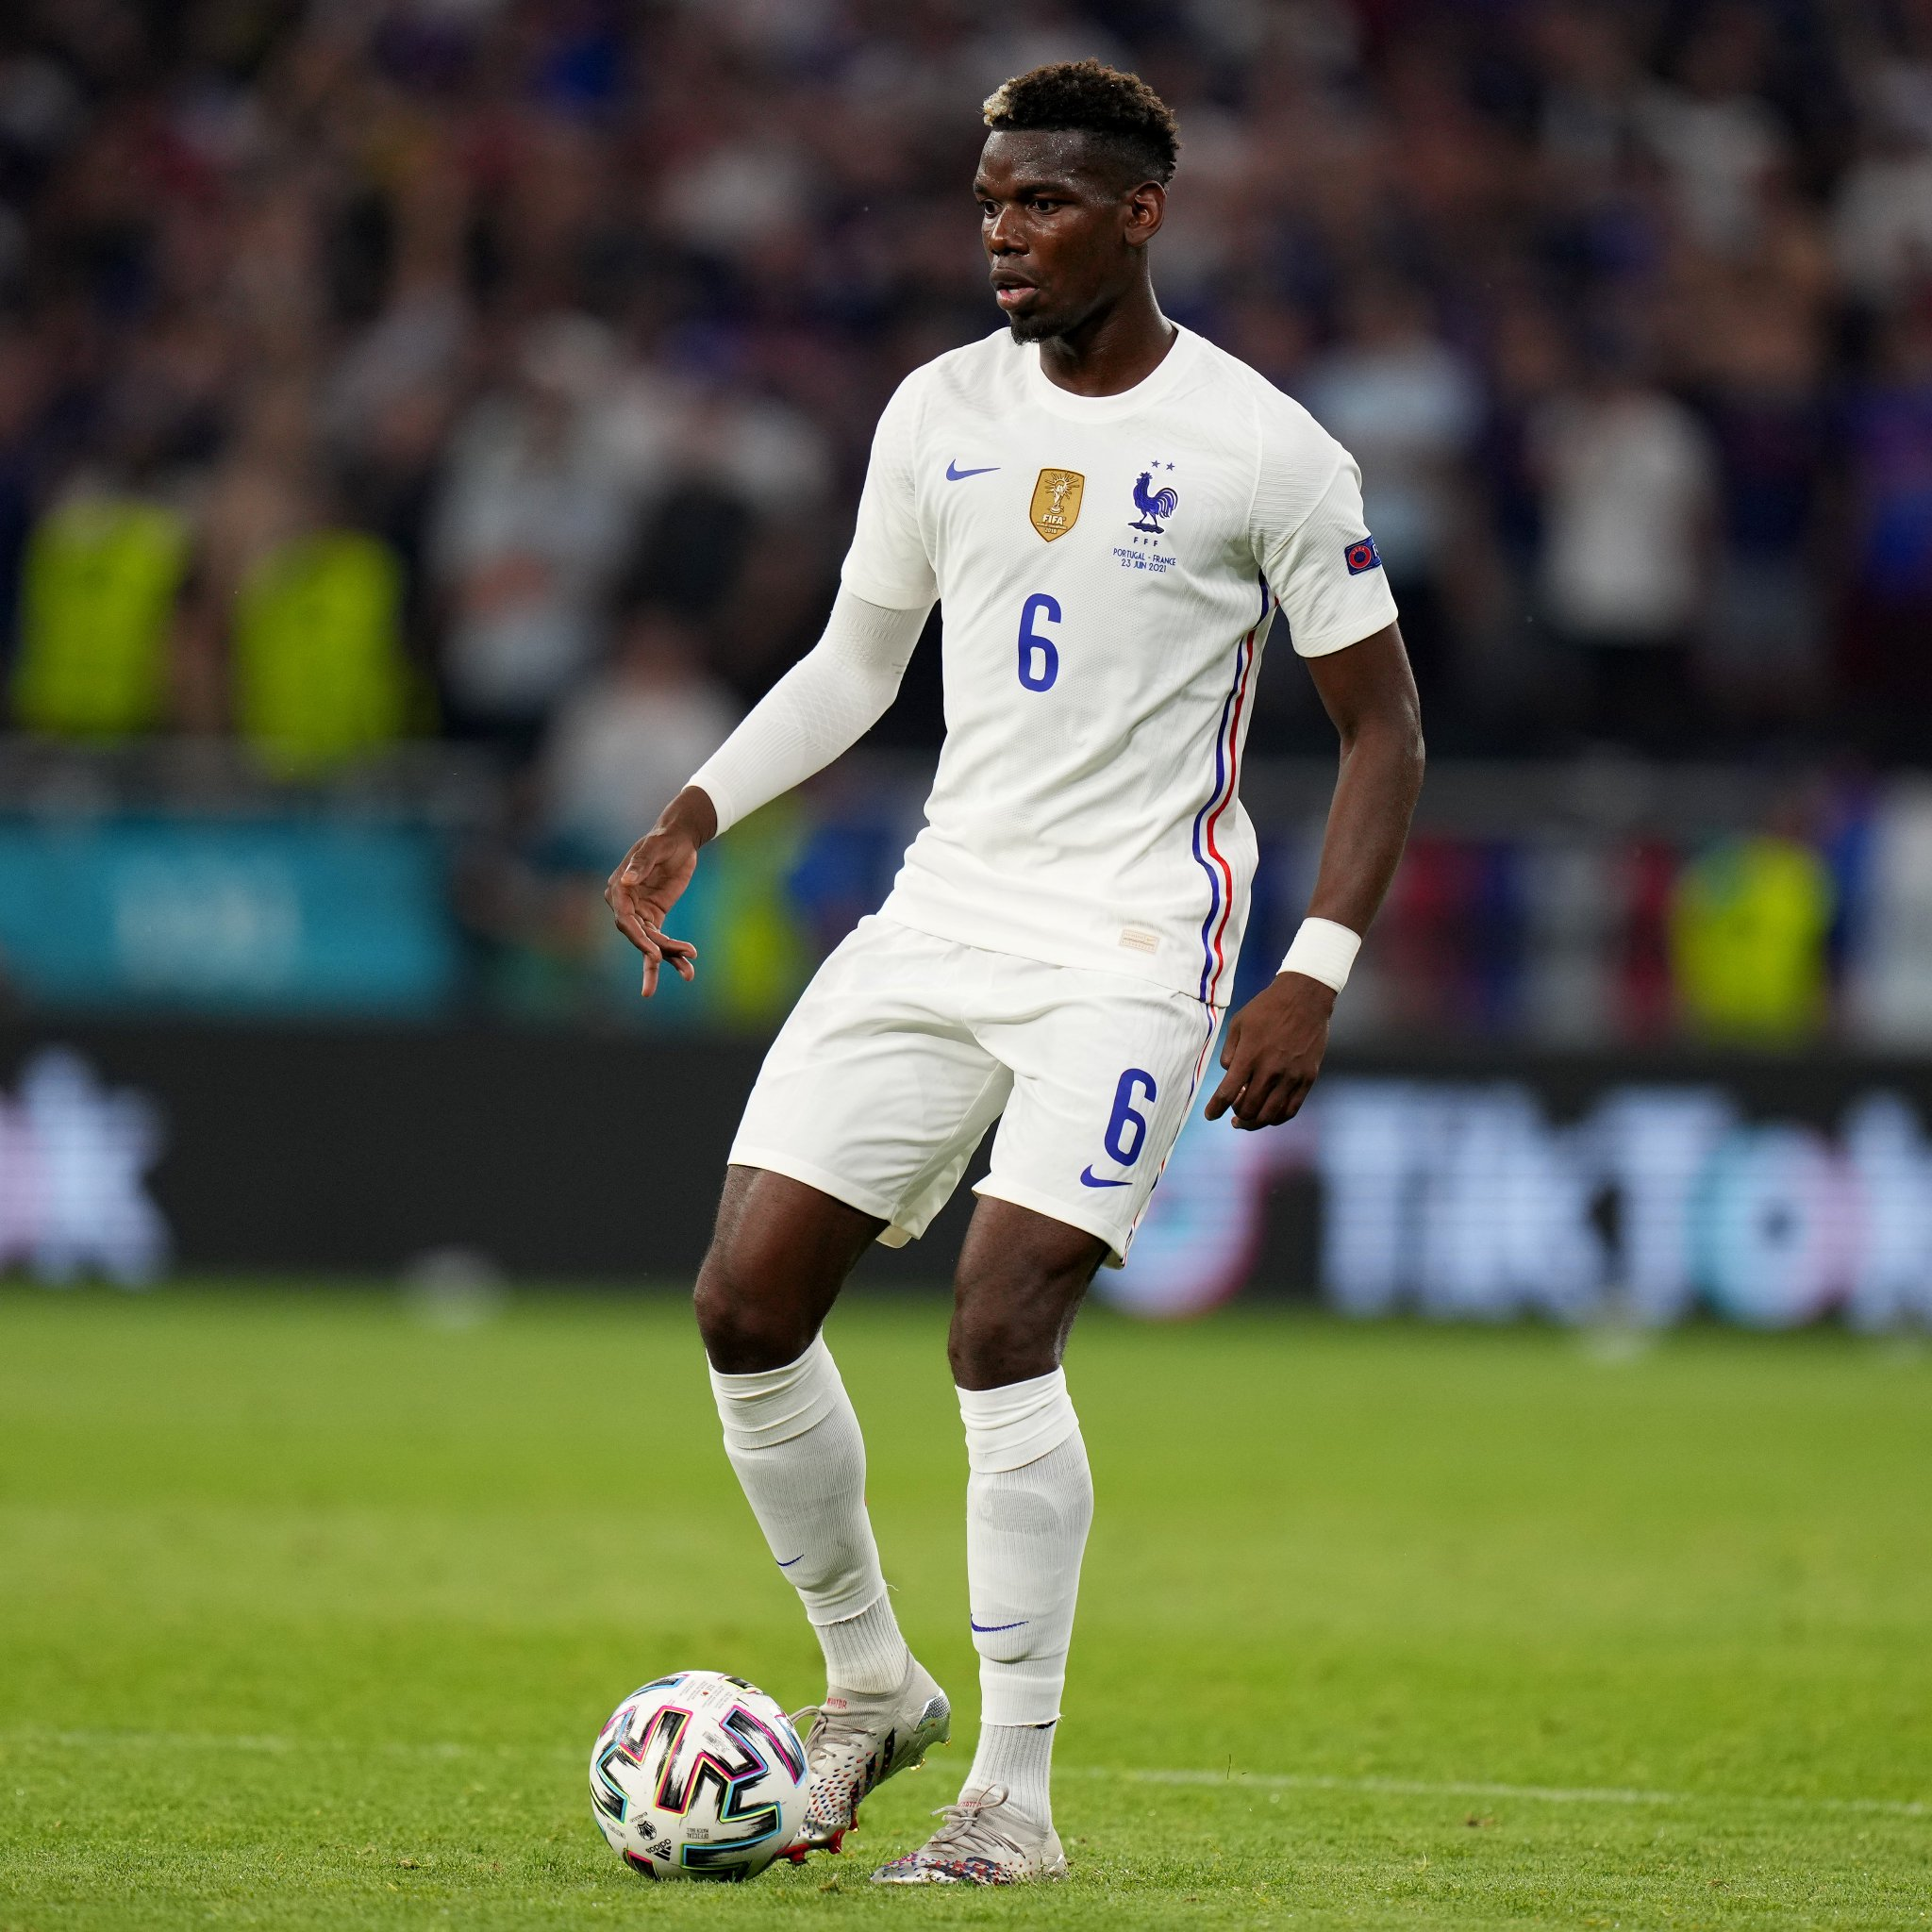 'Pogba Is So Good' – Aribo Gushes Over French Midfield Star